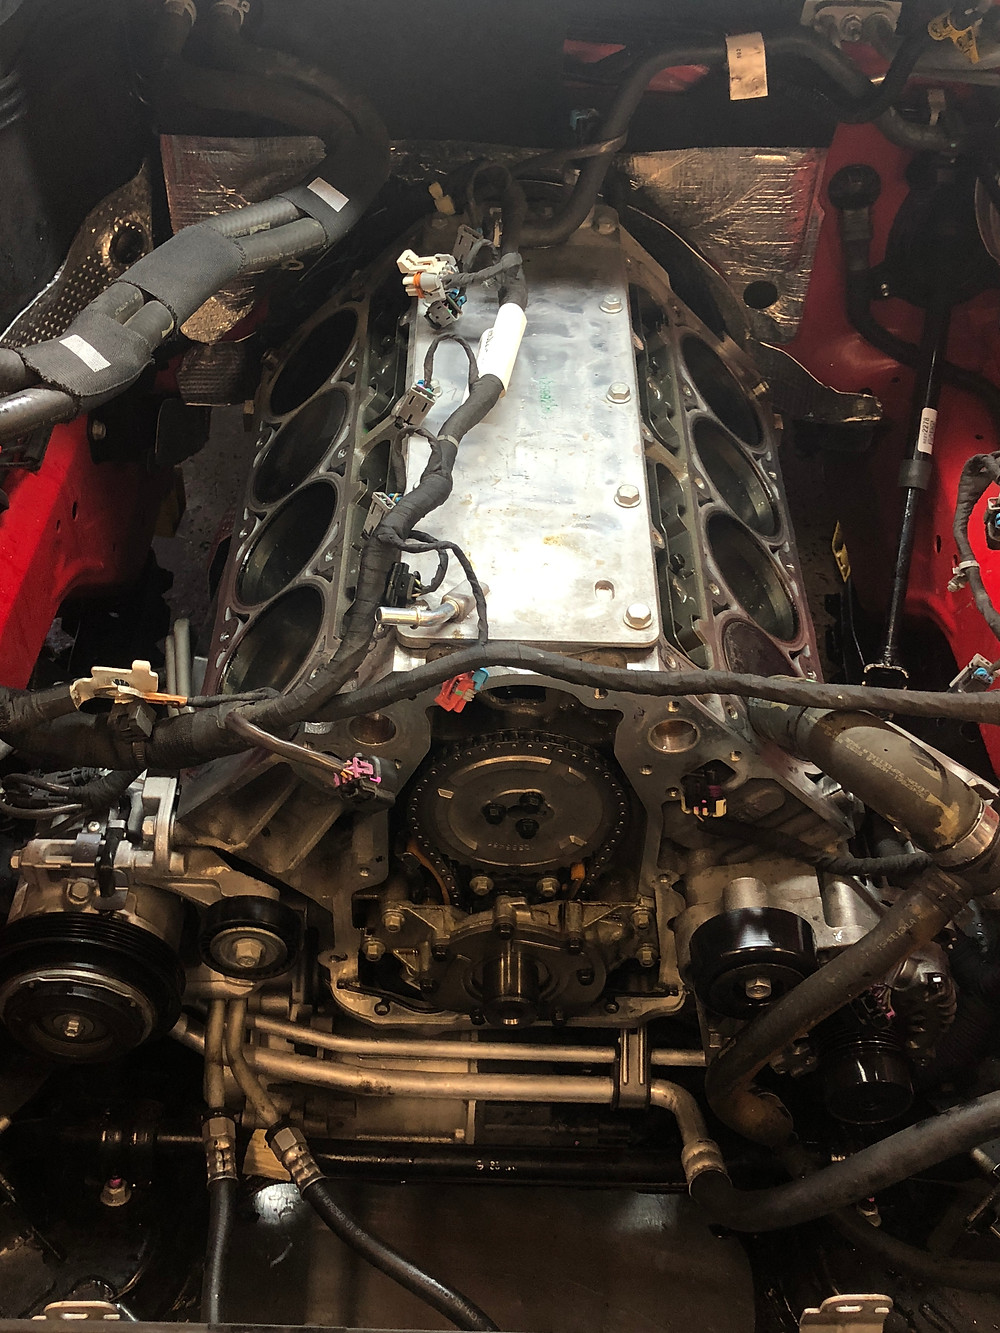 Chevrolet, LS3, Chevy SS, Holden Commodore